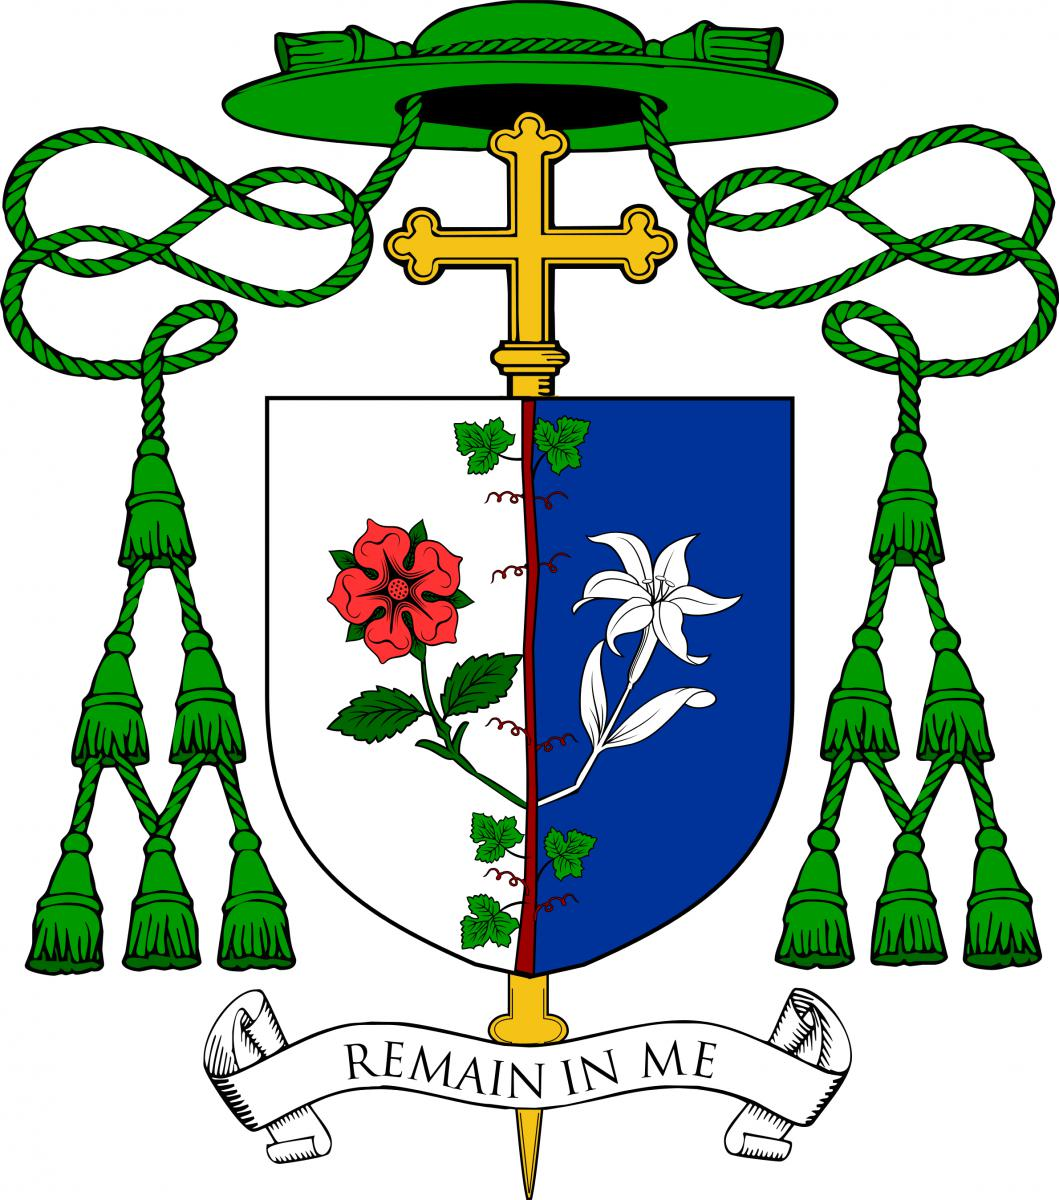 catholic singles in grand island Welcome to the online home of grand island central catholic school we are committed to, and we produce excellence the proof is in our students founded in 1956, we are proud to serve the community of grand island.